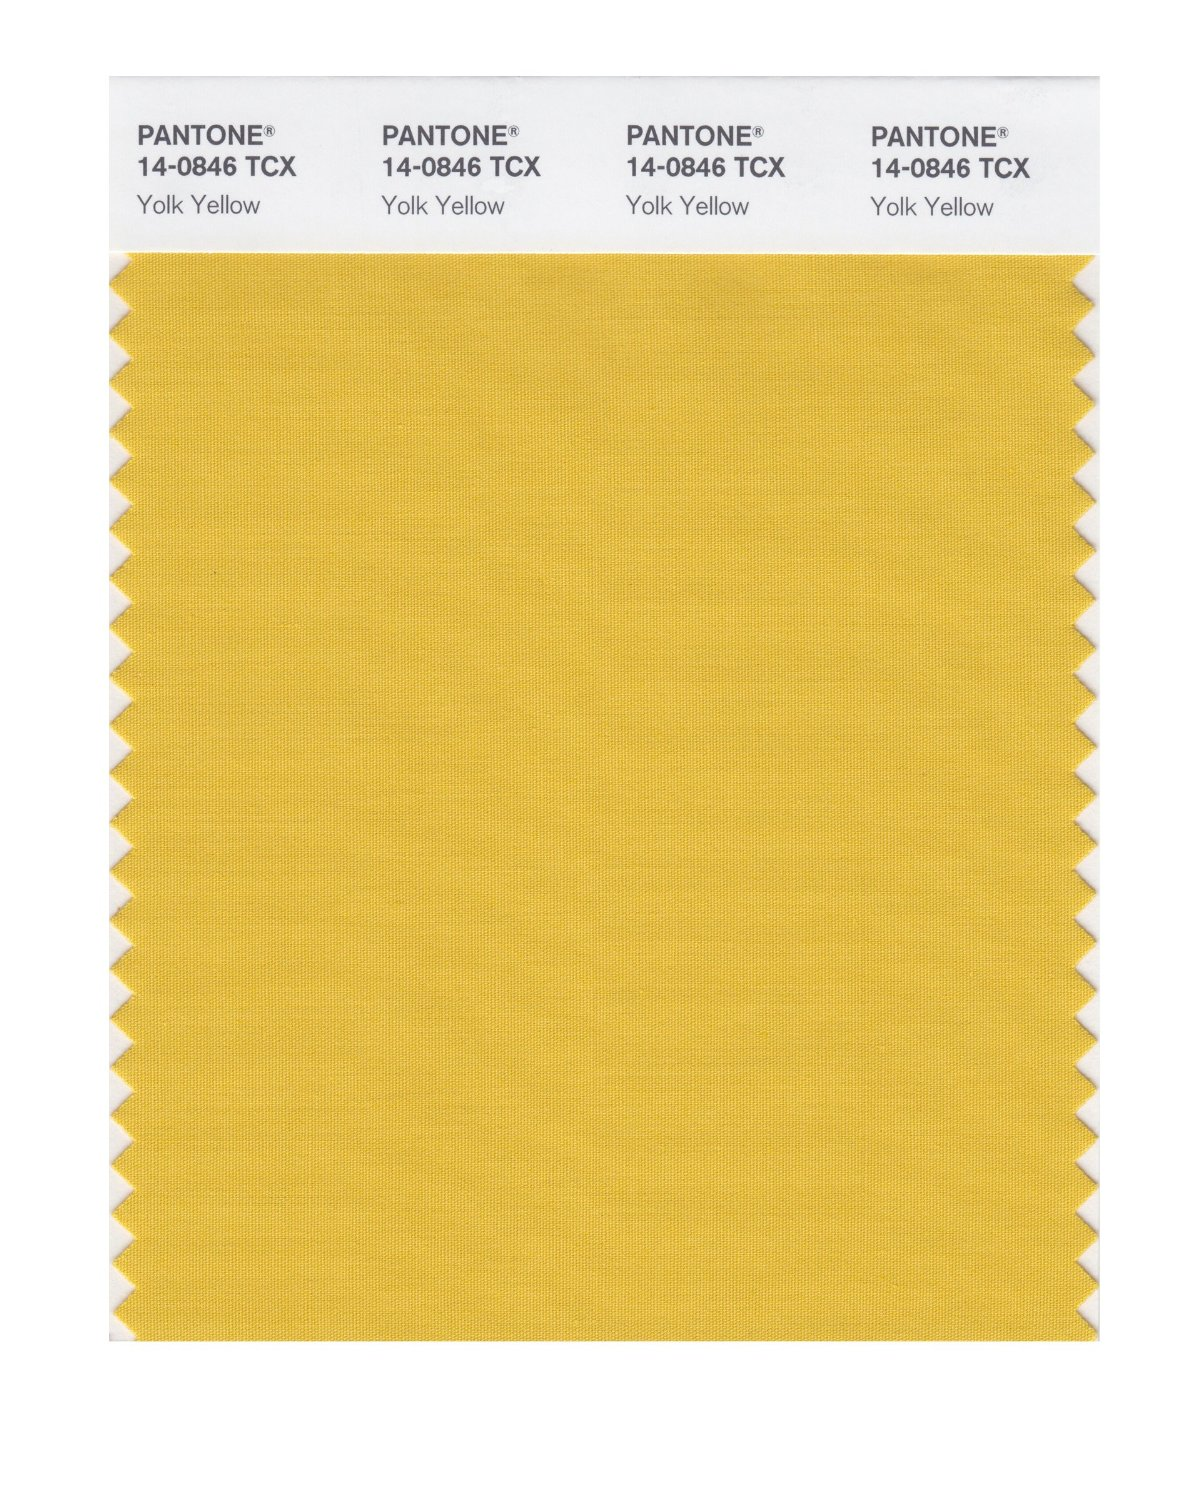 Pantone Smart Swatch 14-0846 Yolk Yellow